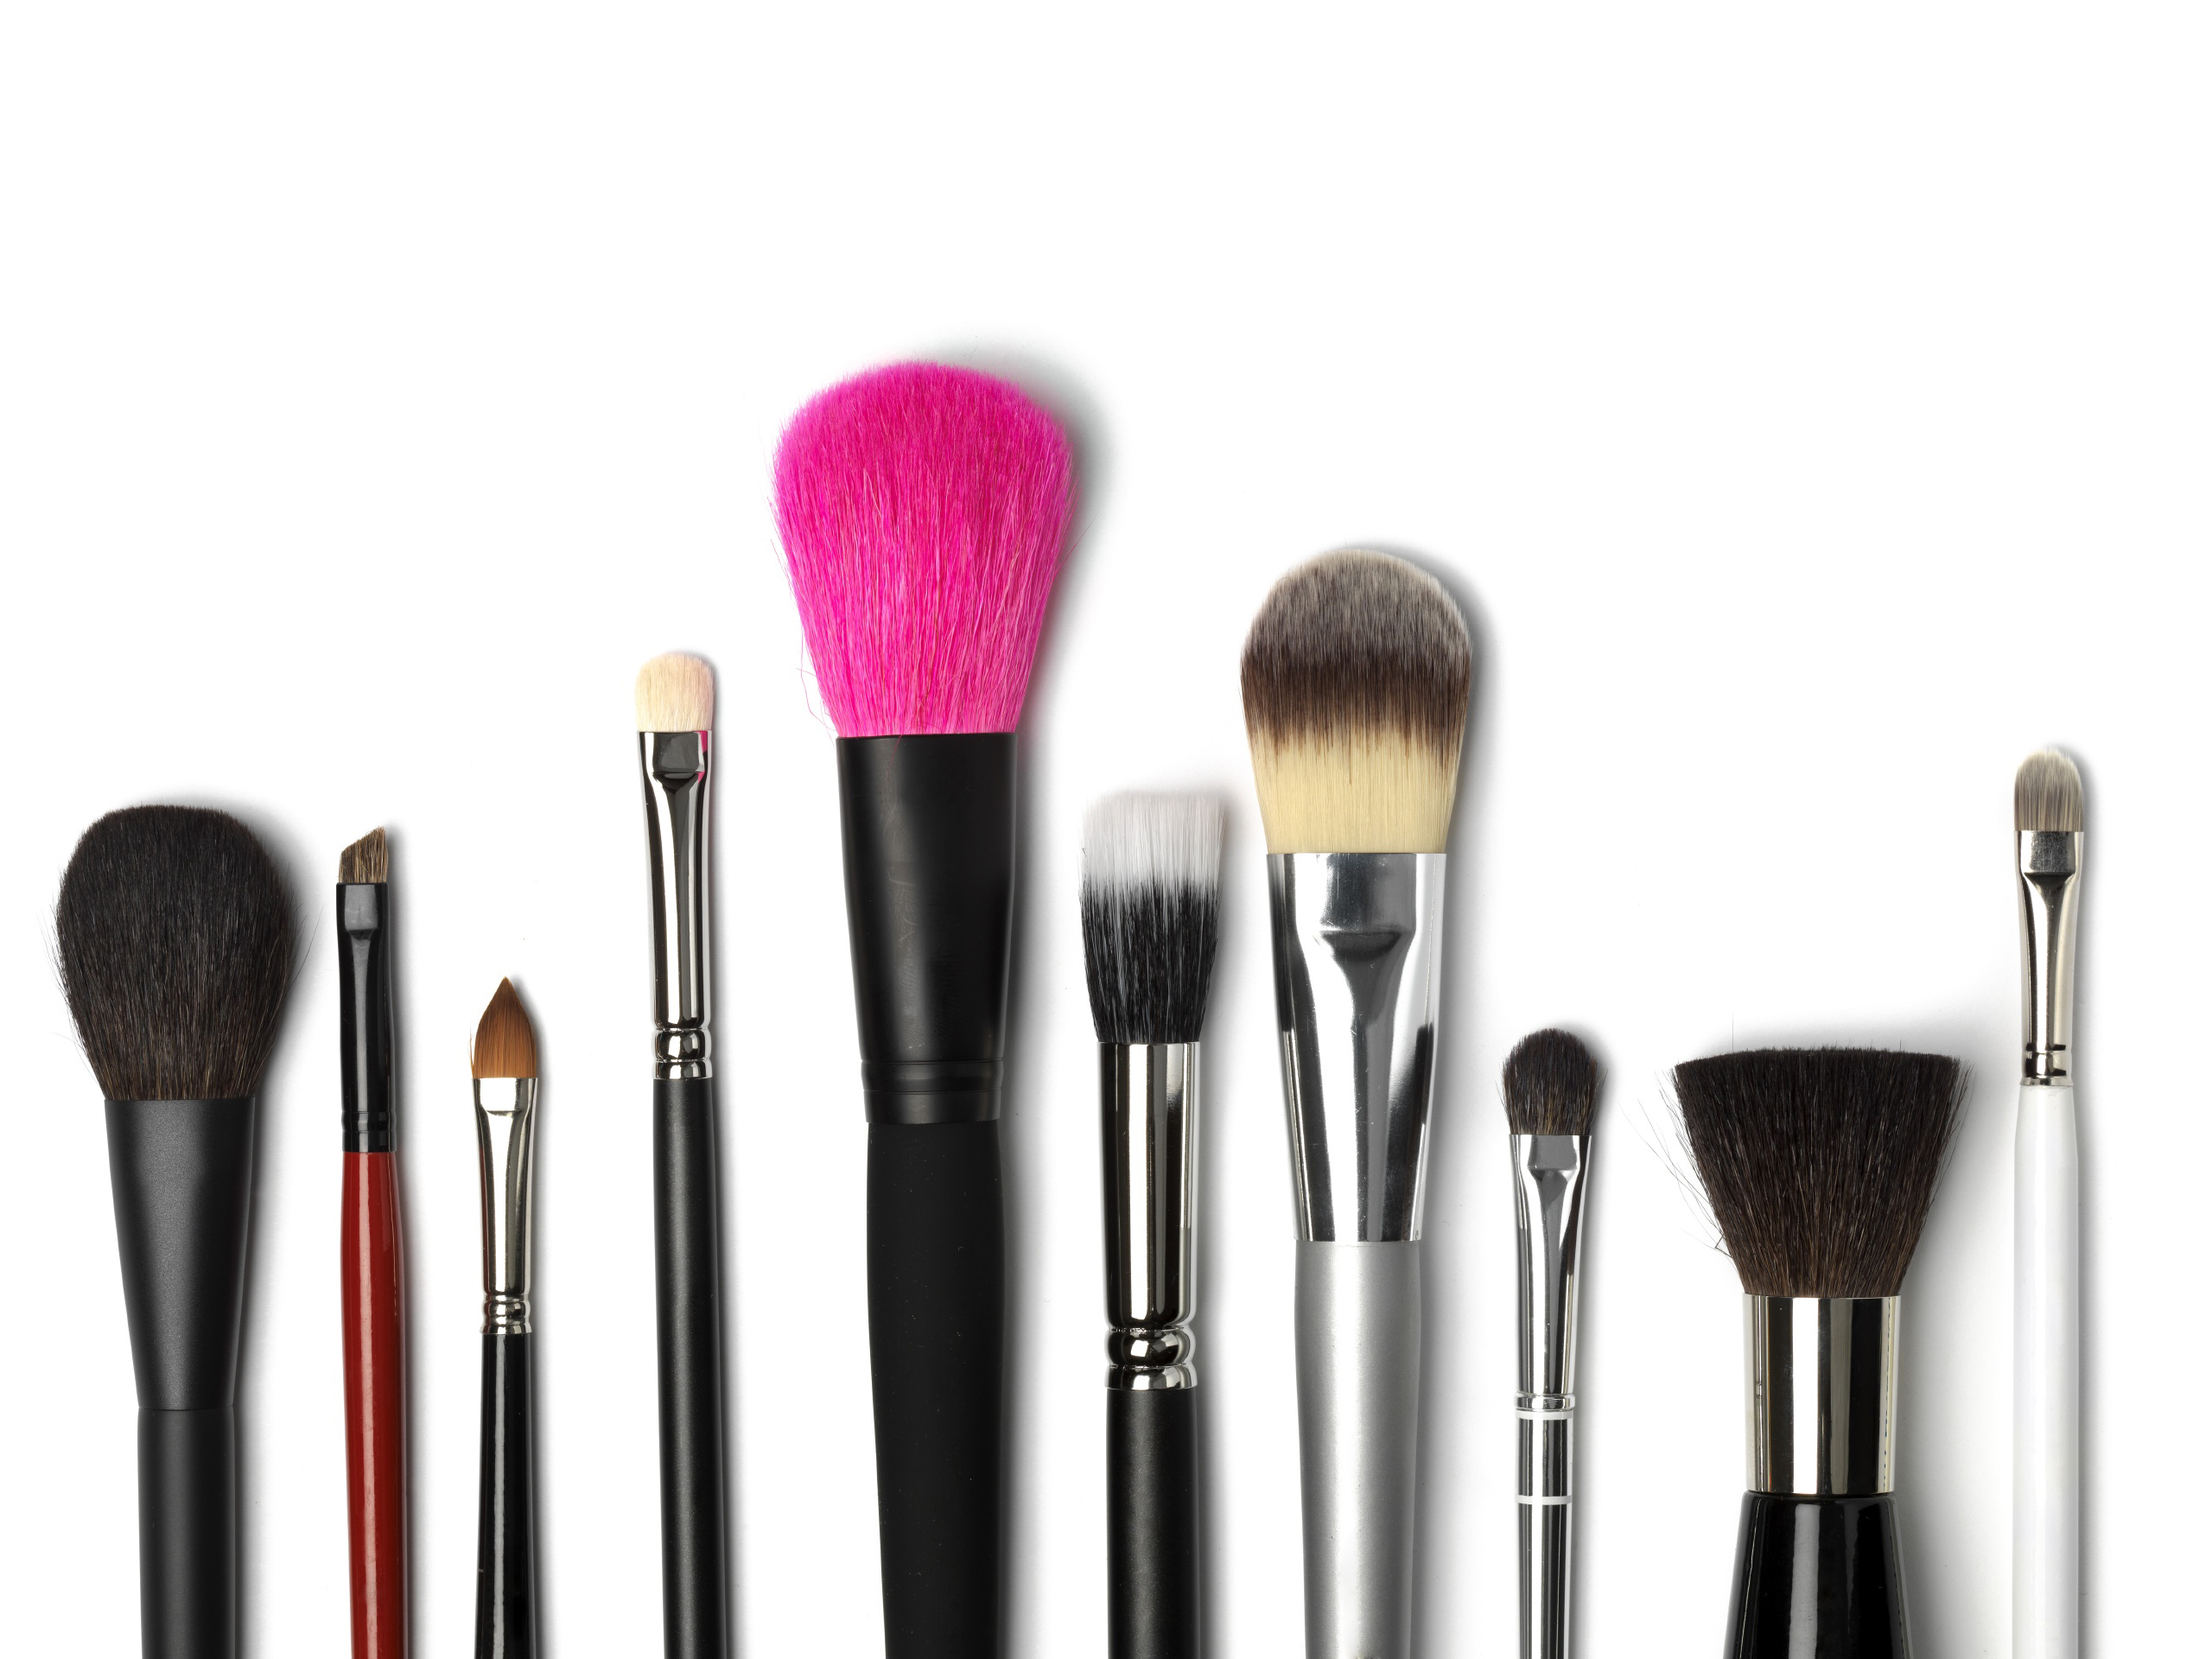 5 Fabulous Makeup Tutorials For The Summer - The Co ReportThe Co Report